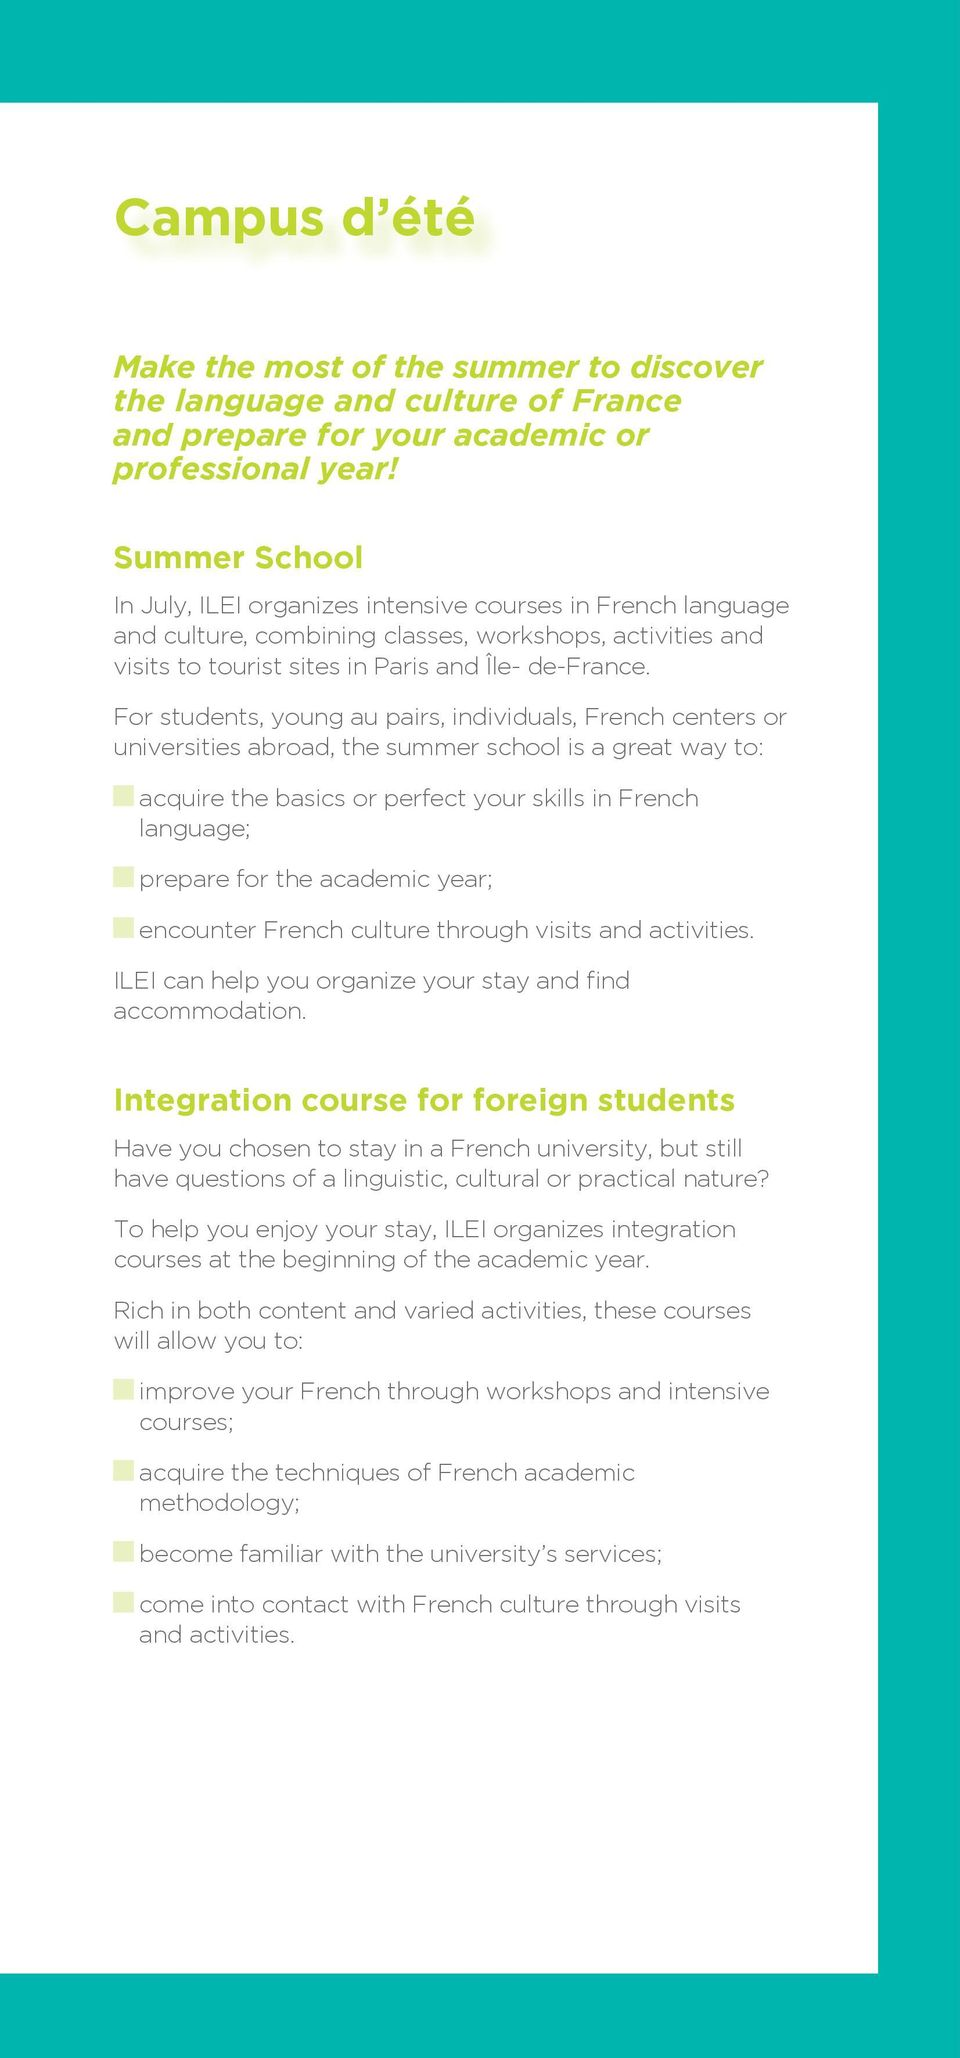 For students, young au pairs, individuals, French centers or universities abroad, the summer school is a great way to: acquire the basics or perfect your skills in French language; prepare for the